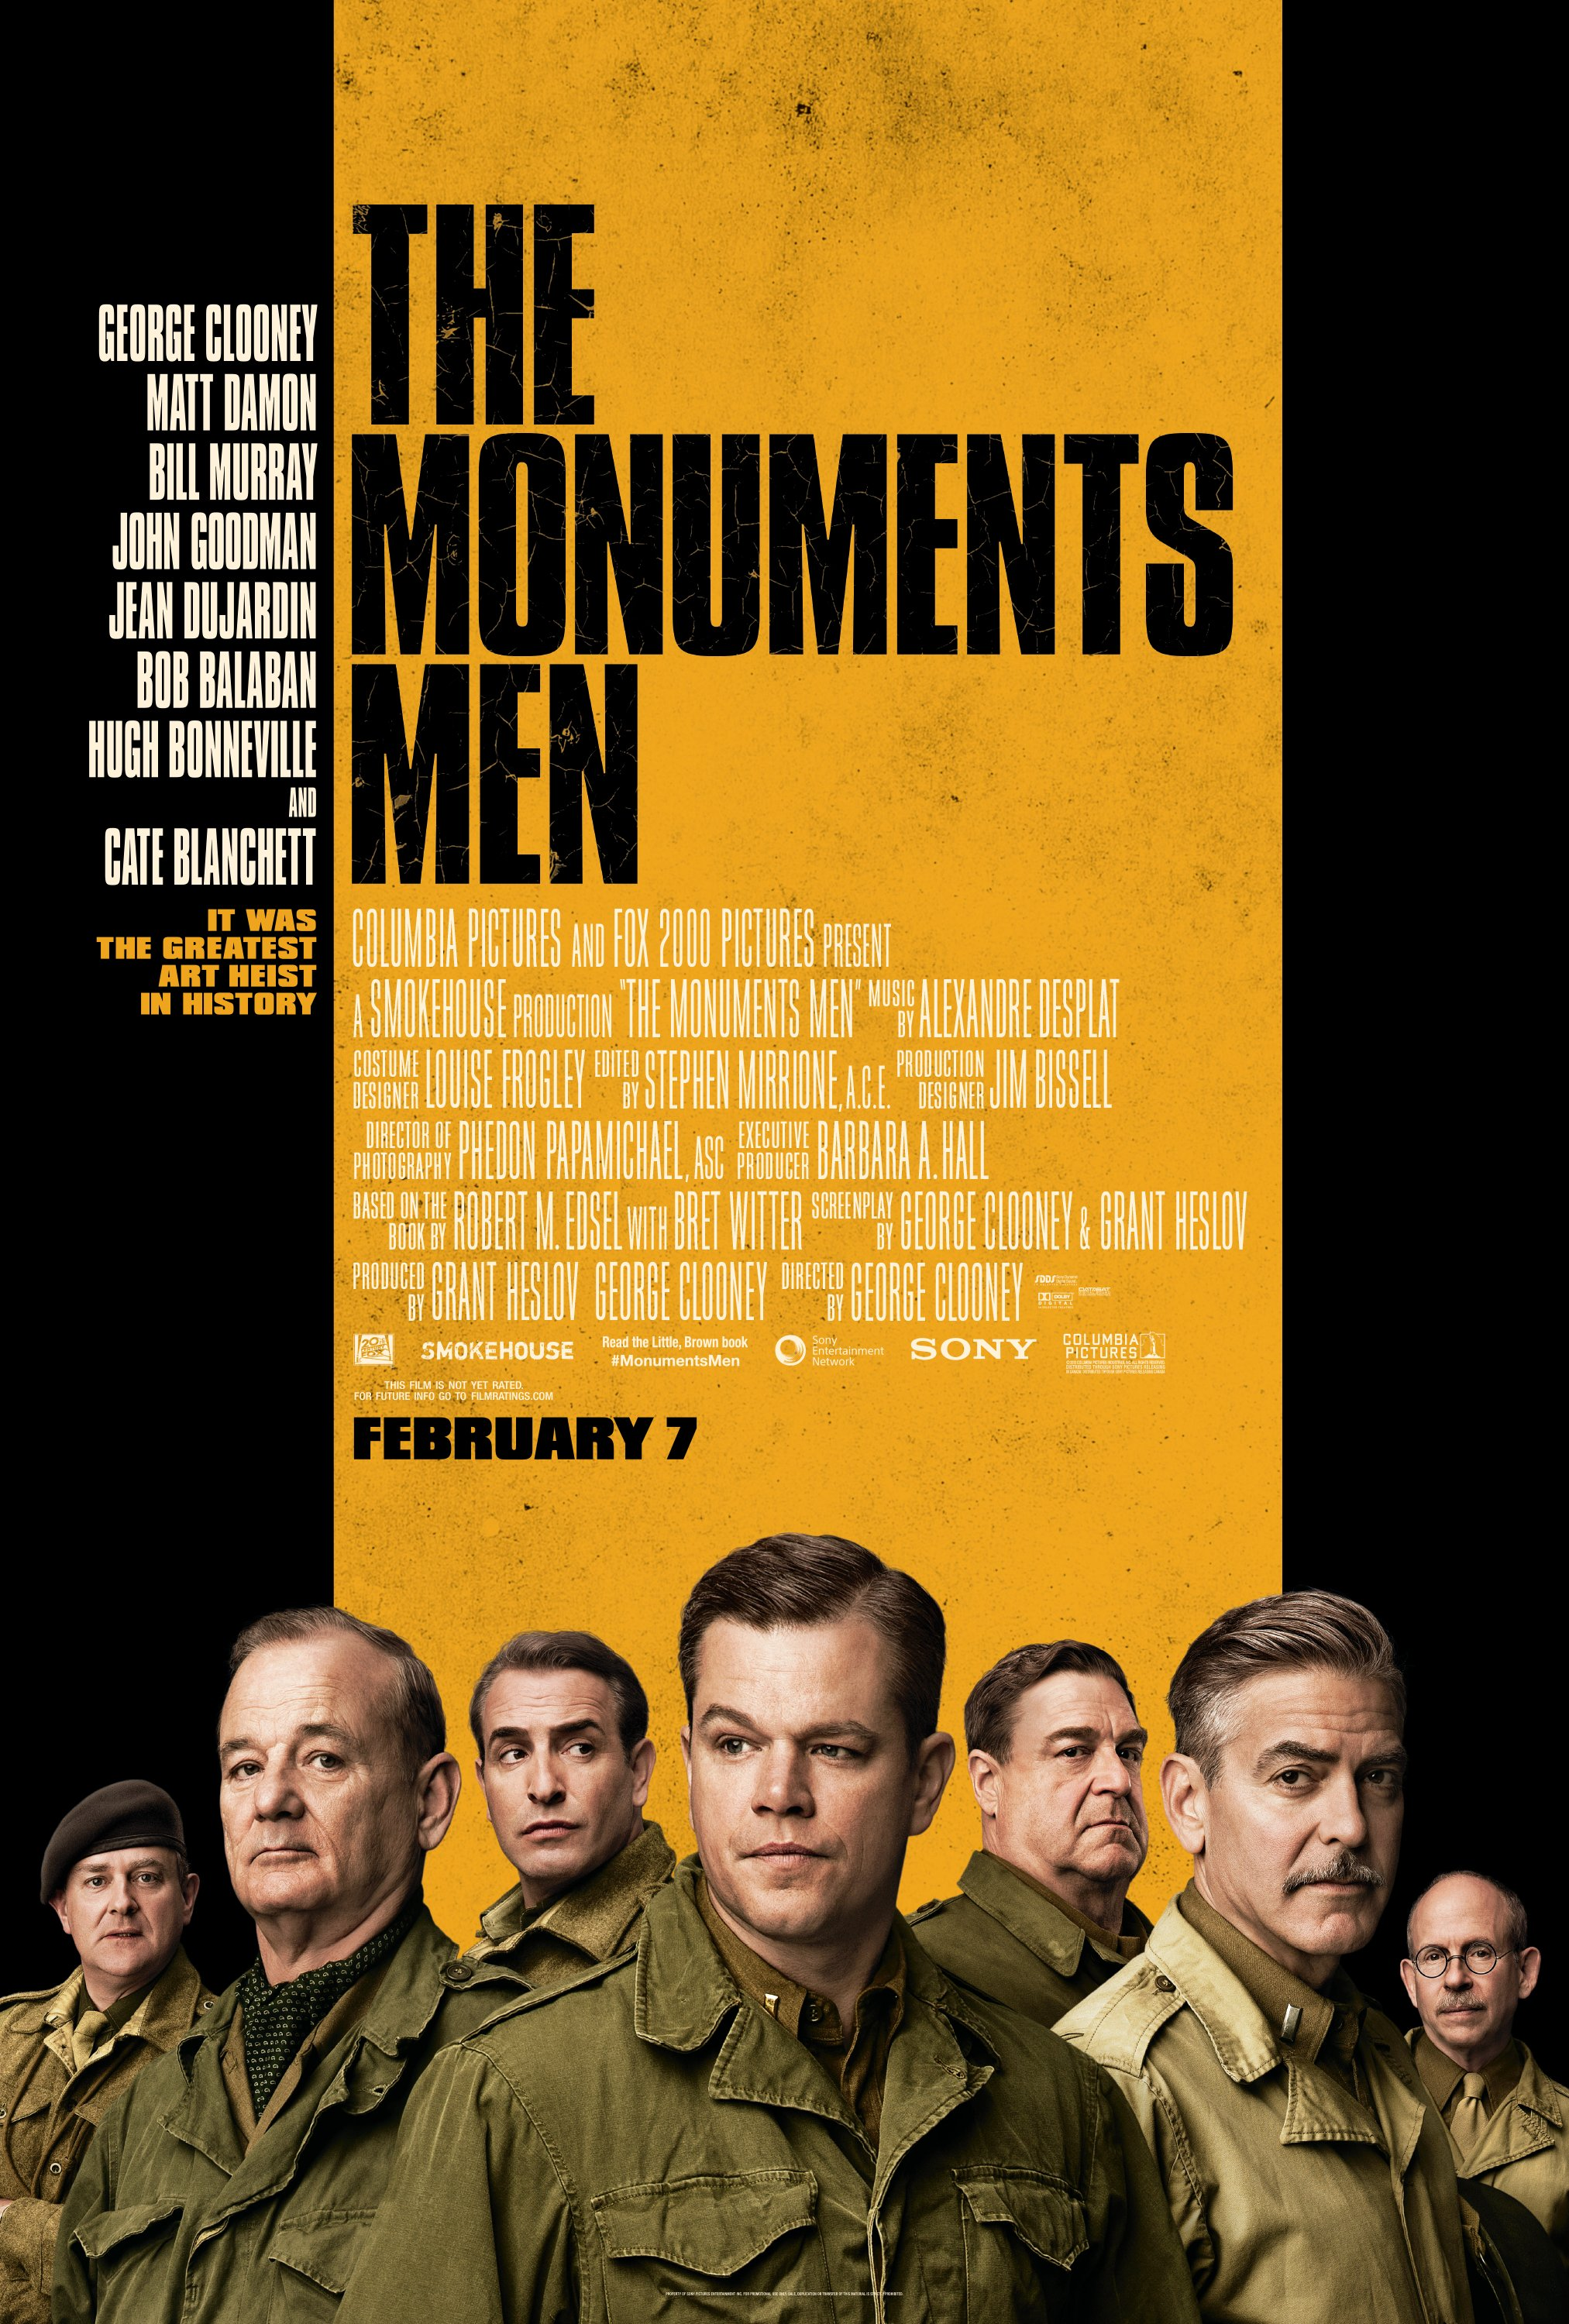 THE MONUMENTS MEN (PG-13)